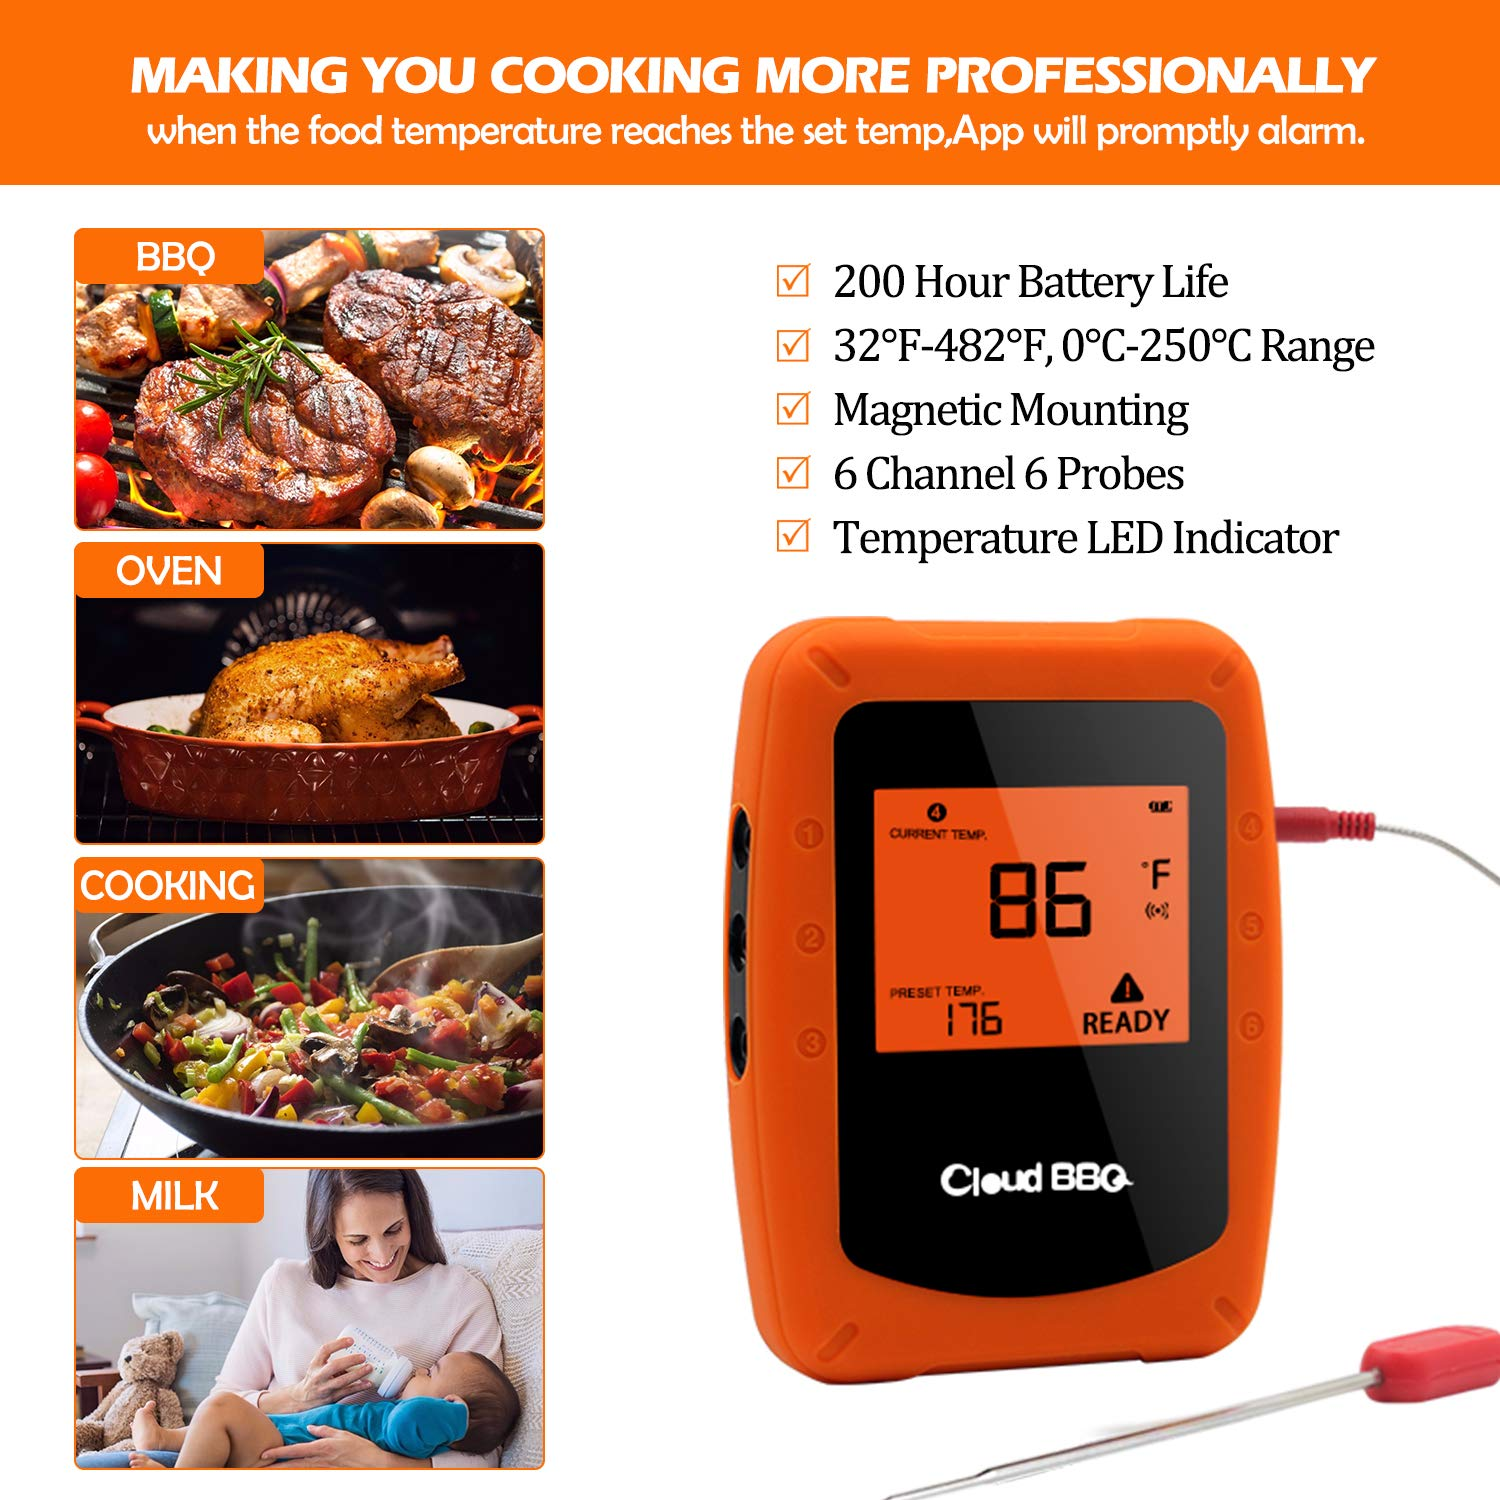 DareTang Bluetooth Meat Thermometer,Instant Read//APP WIFI Remote//Alarm Monitor//Wireless Digital BBQ Thermometer With 6 Waterproof Probes For Cooking Smoker Kitchen Oven Grill,Support IOS /& Android